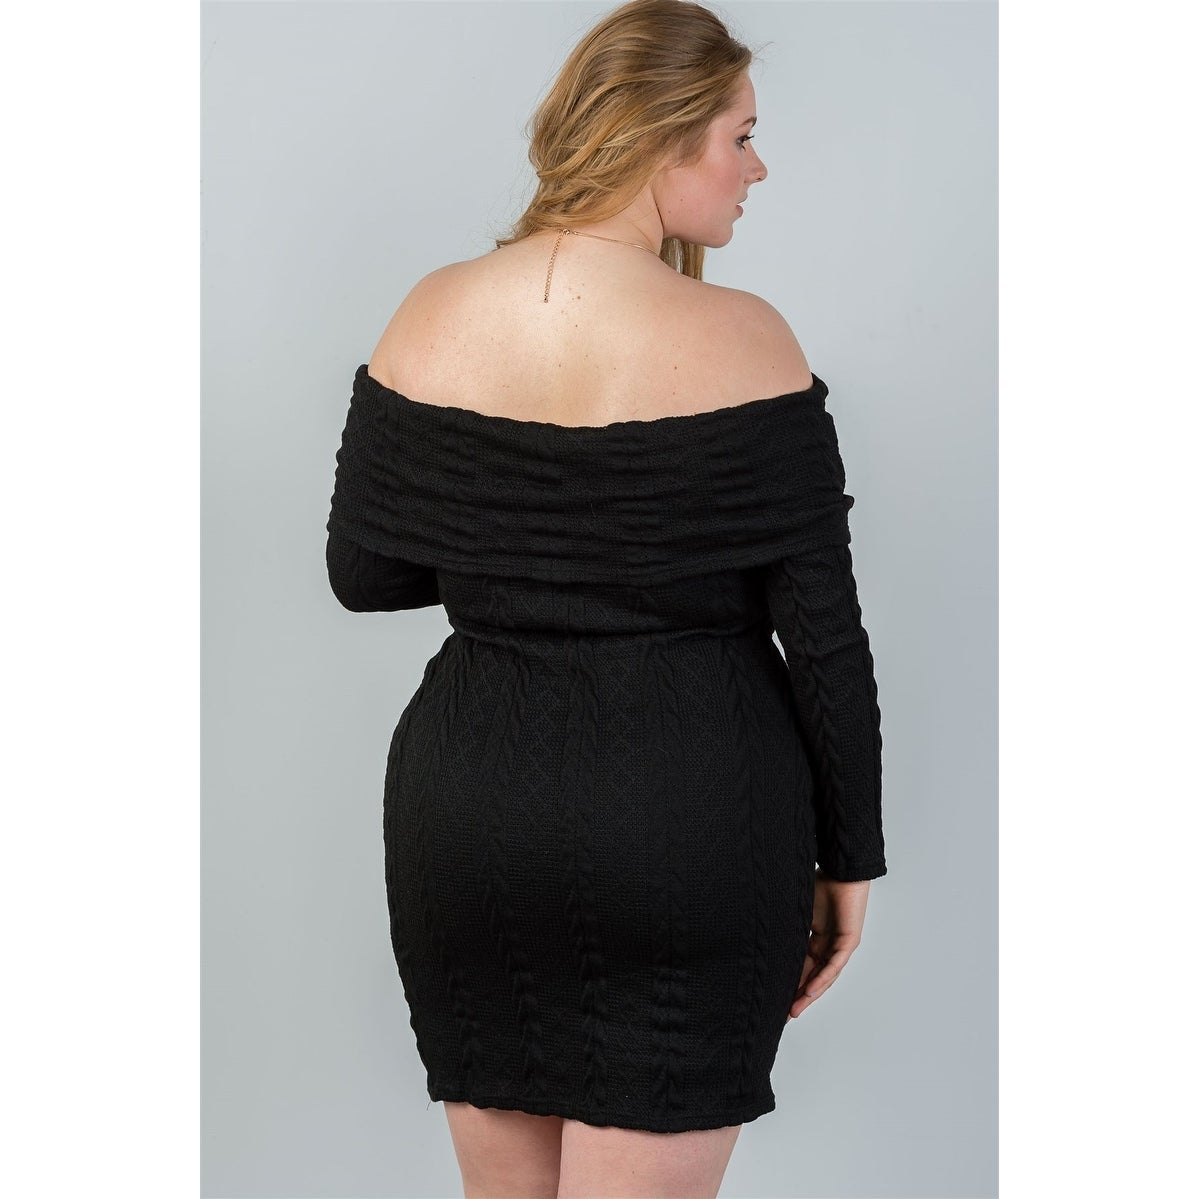 Ladies fashion black plus size off the shoulder black ribbed long sleeve bodycon